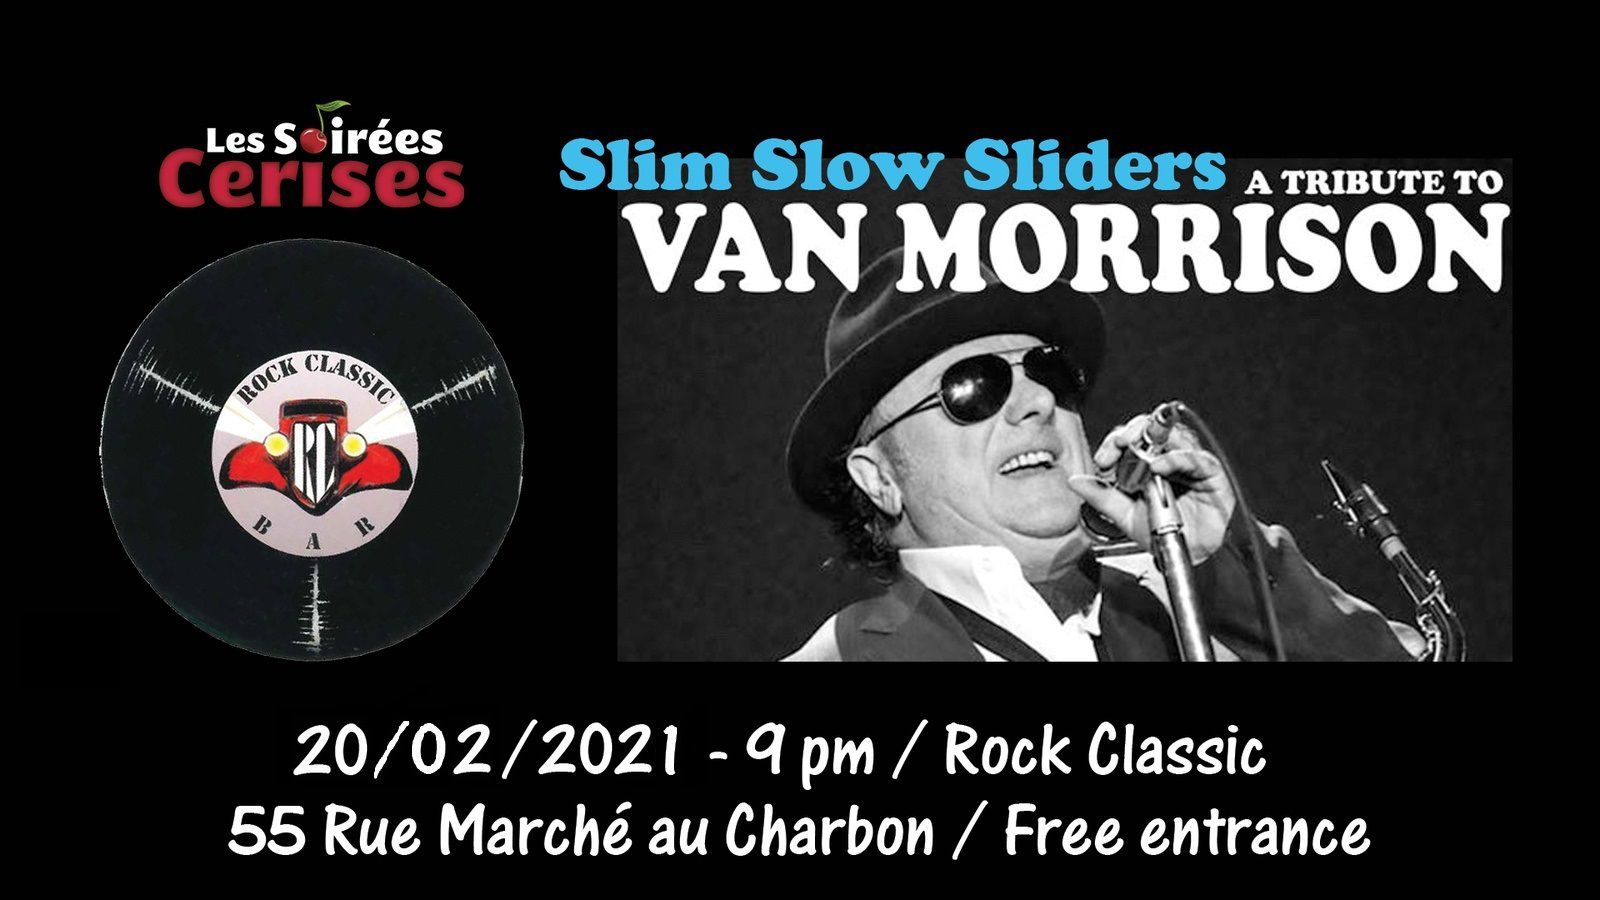 🎵 Slim Slow Sliders , a tribute band to VAN MORRISON @ Rock Classic - 20/02/2021 - 21h00 - Entrée gratuite !